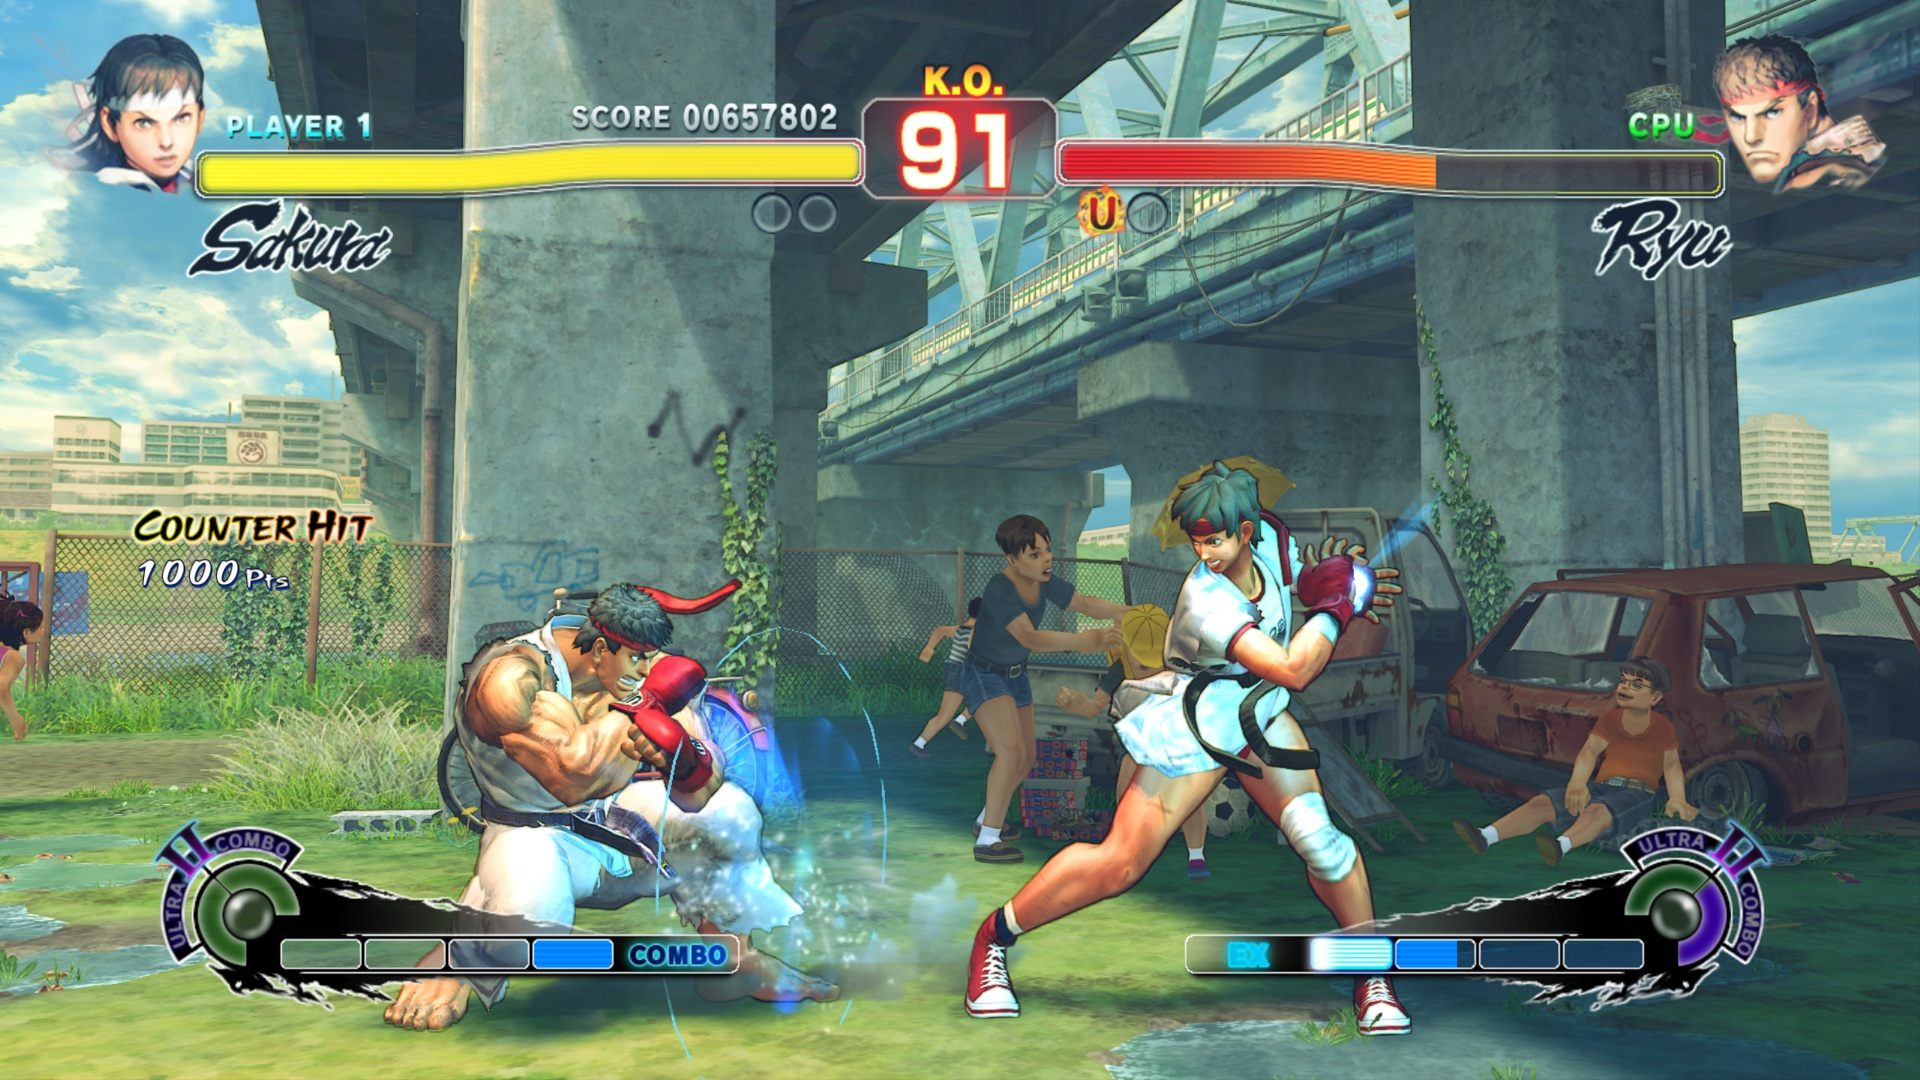 Streetfighter Game